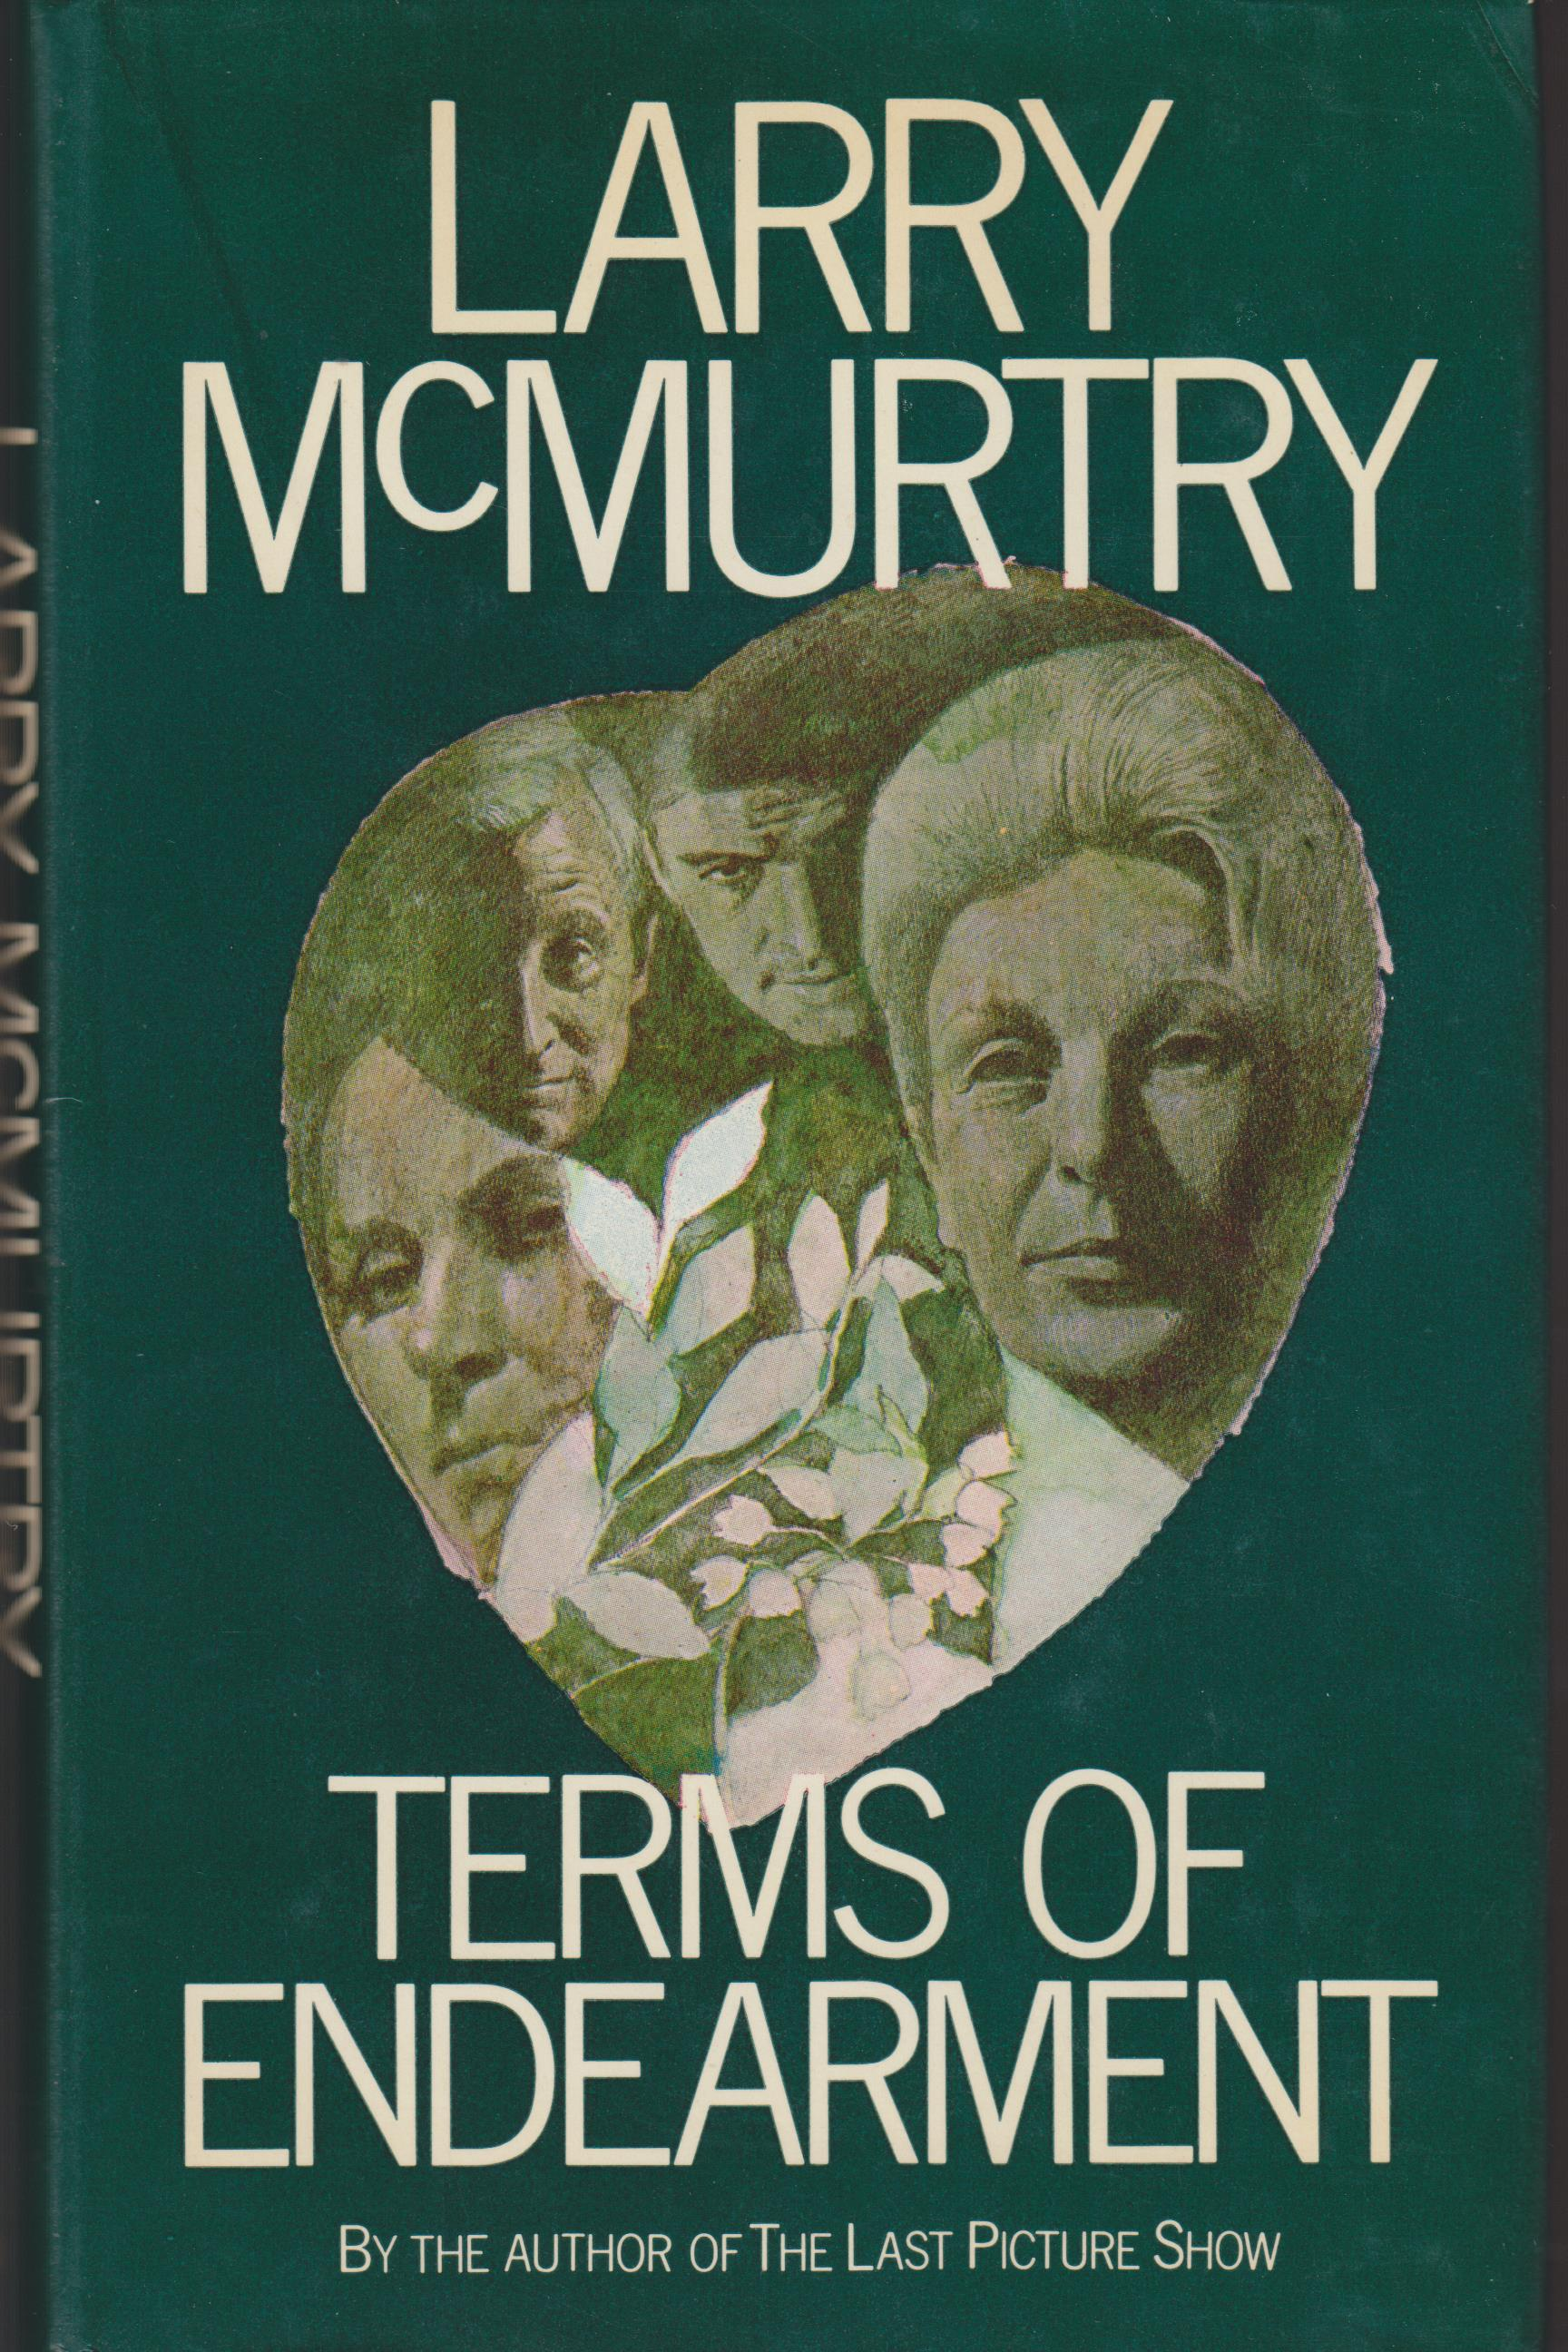 larry mcmurtry - terms of endearment - First Edition - AbeBooks